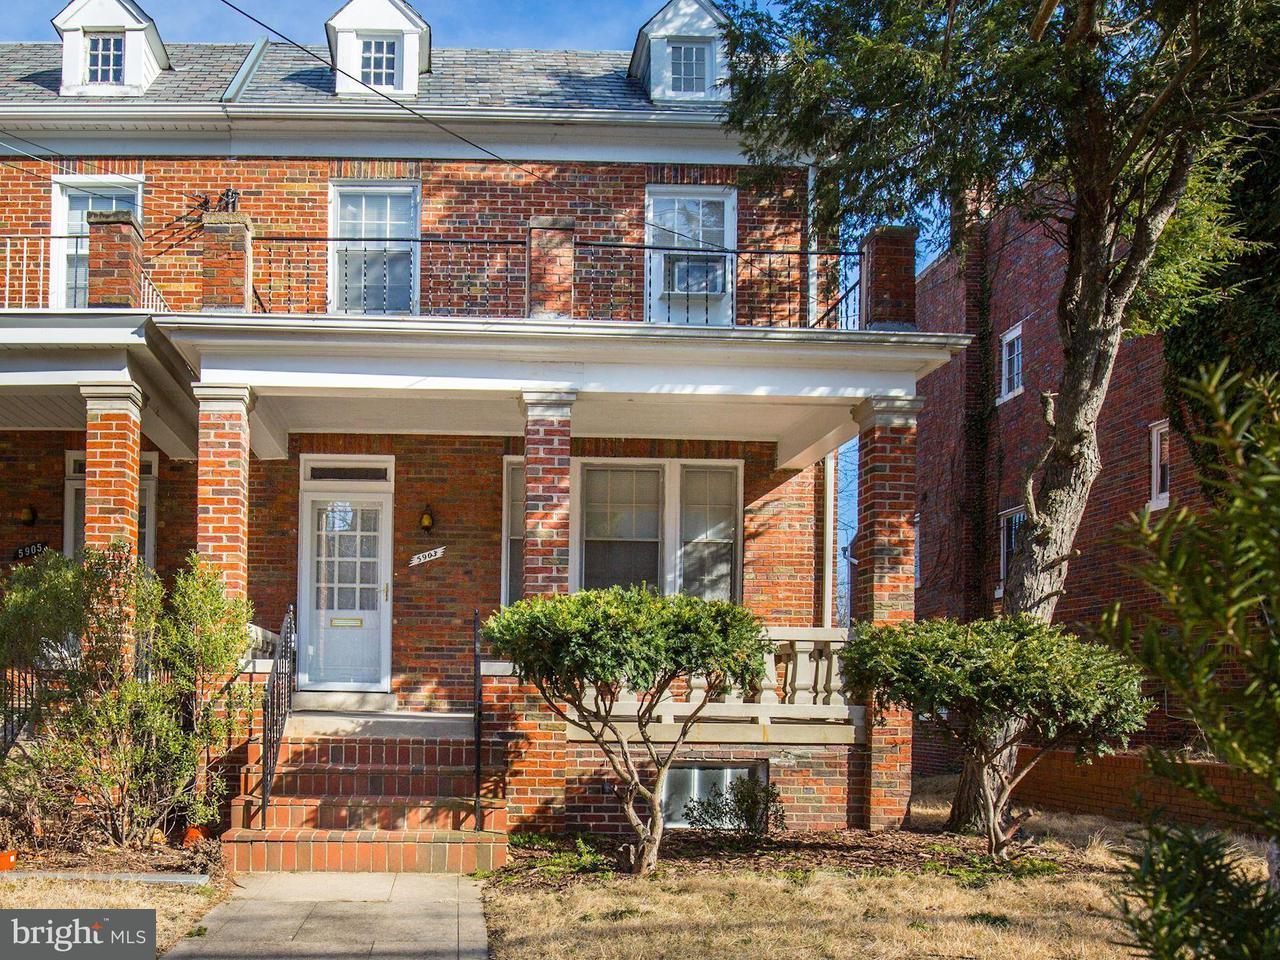 Townhouse for Sale at 5903 7th St Nw 5903 7th St Nw Washington, District Of Columbia 20011 United States